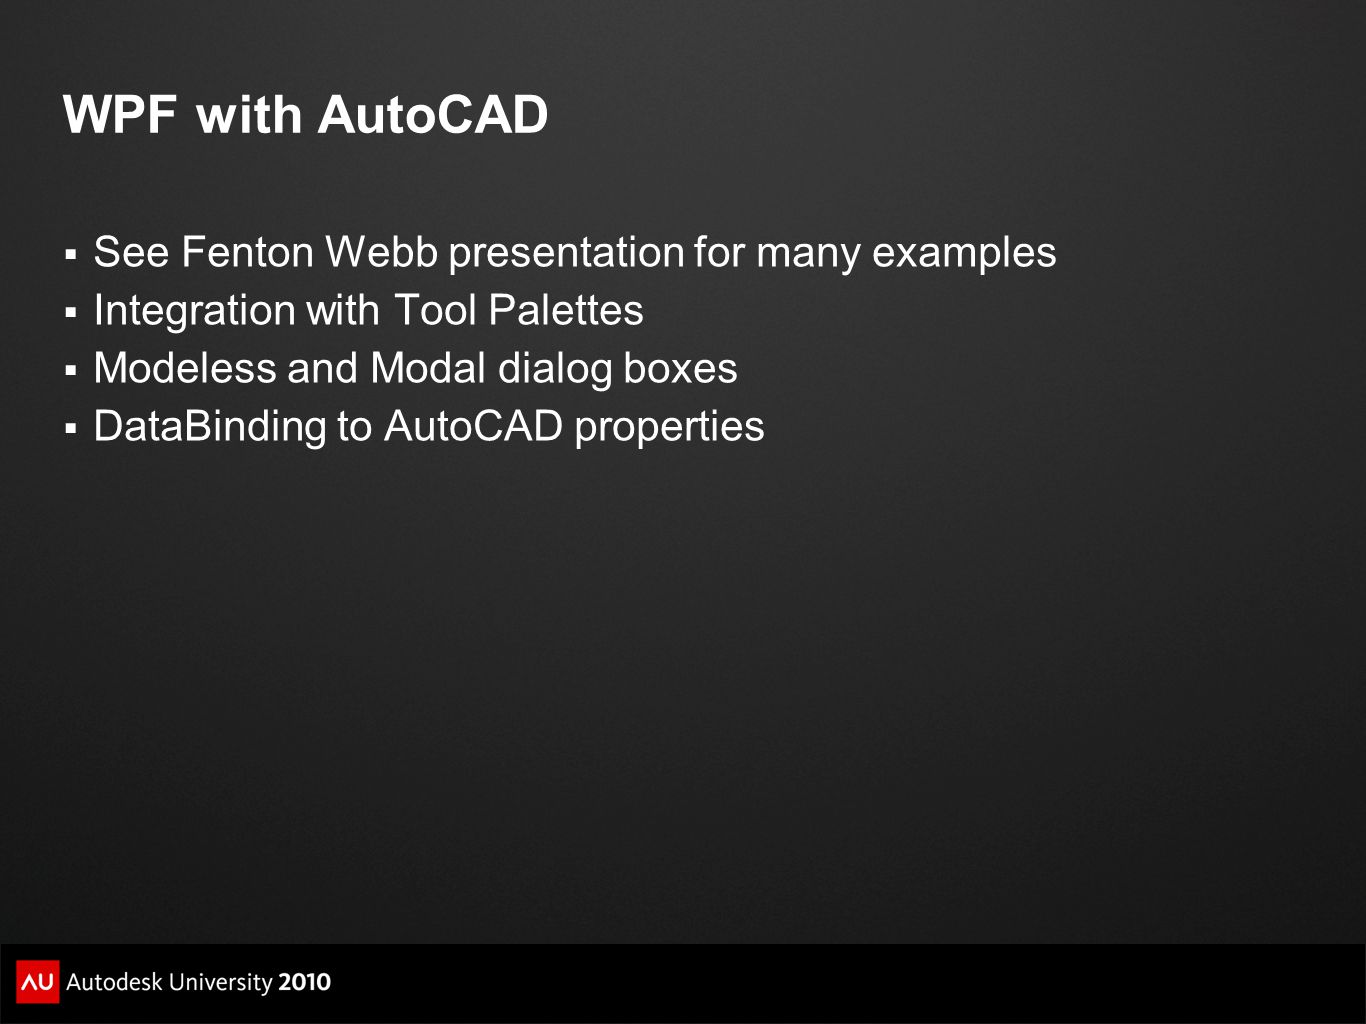 WPF with AutoCAD See Fenton Webb presentation for many examples Integration with Tool Palettes Modeless and Modal dialog boxes DataBinding to AutoCAD properties